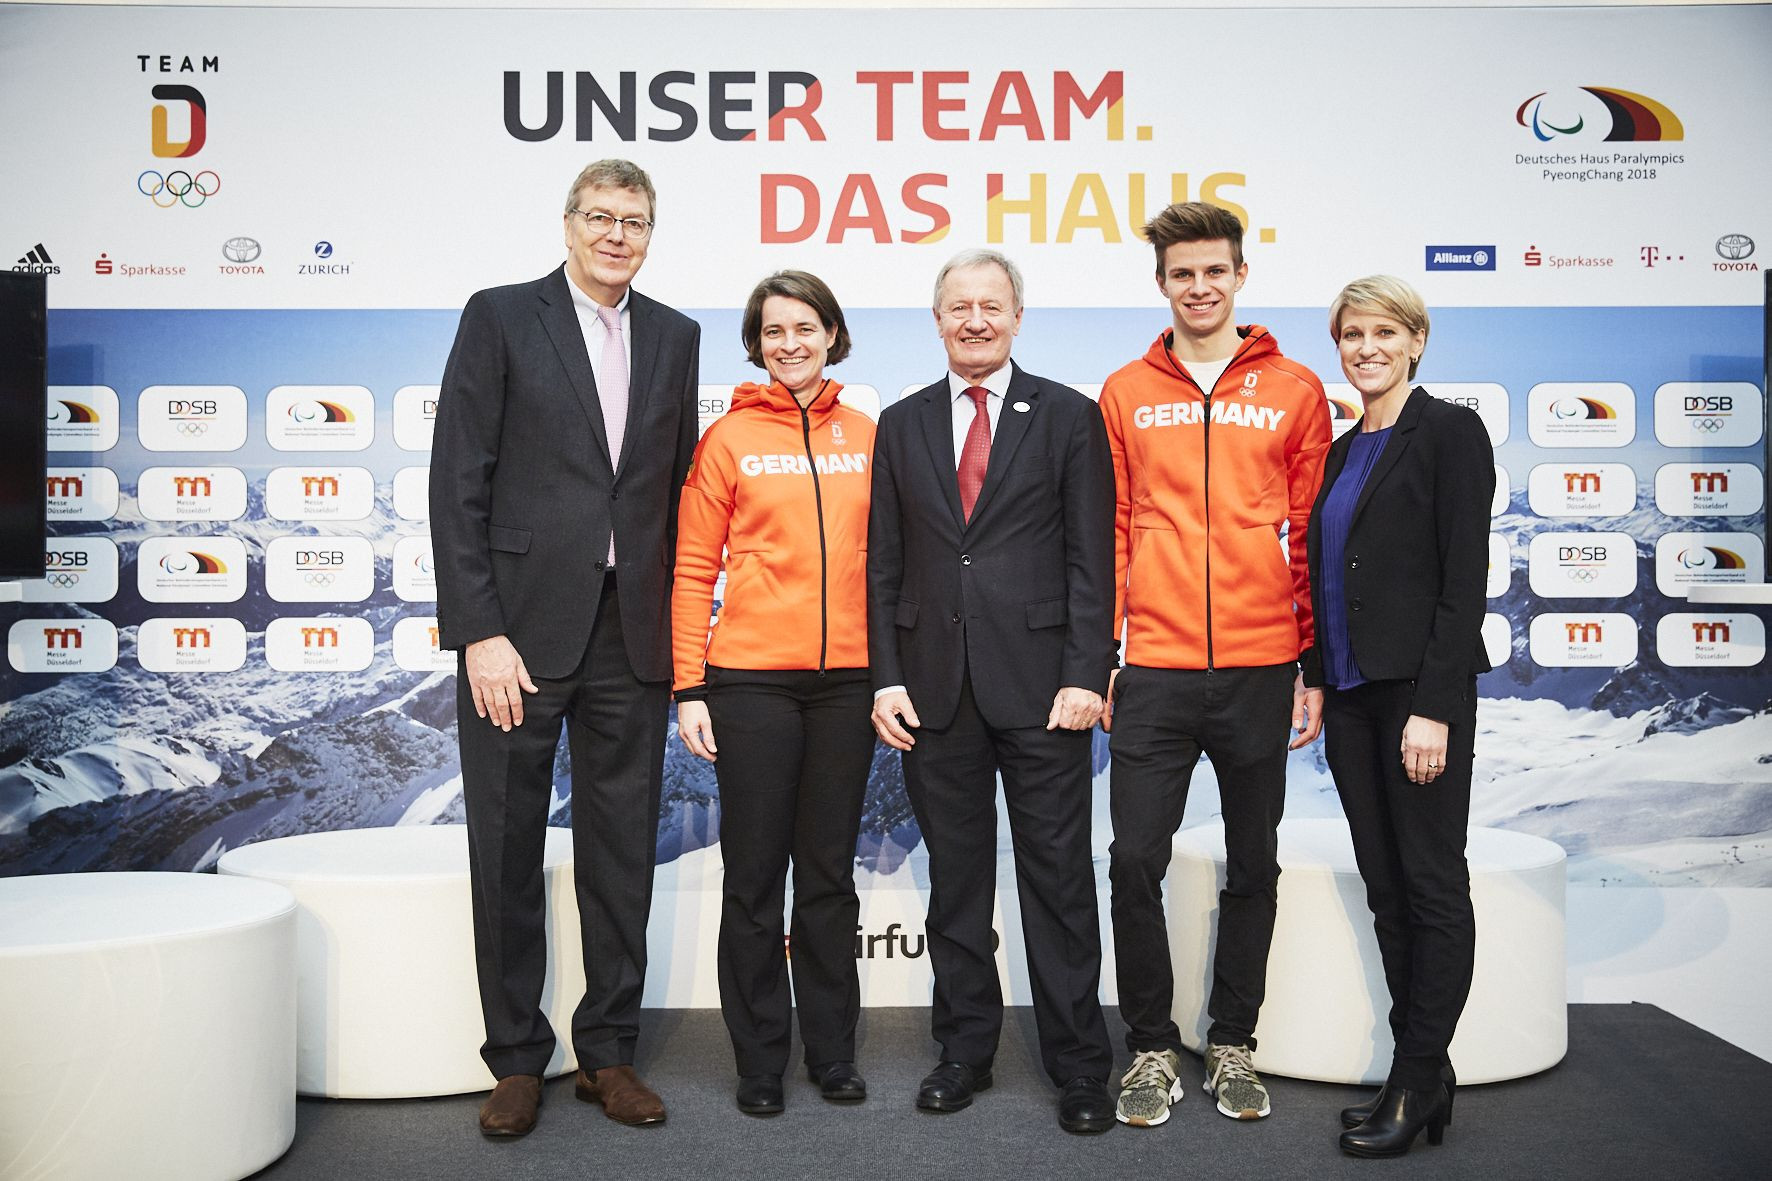 Final planning for German House at Pyeongchang 2018 completed and final construction set to take place